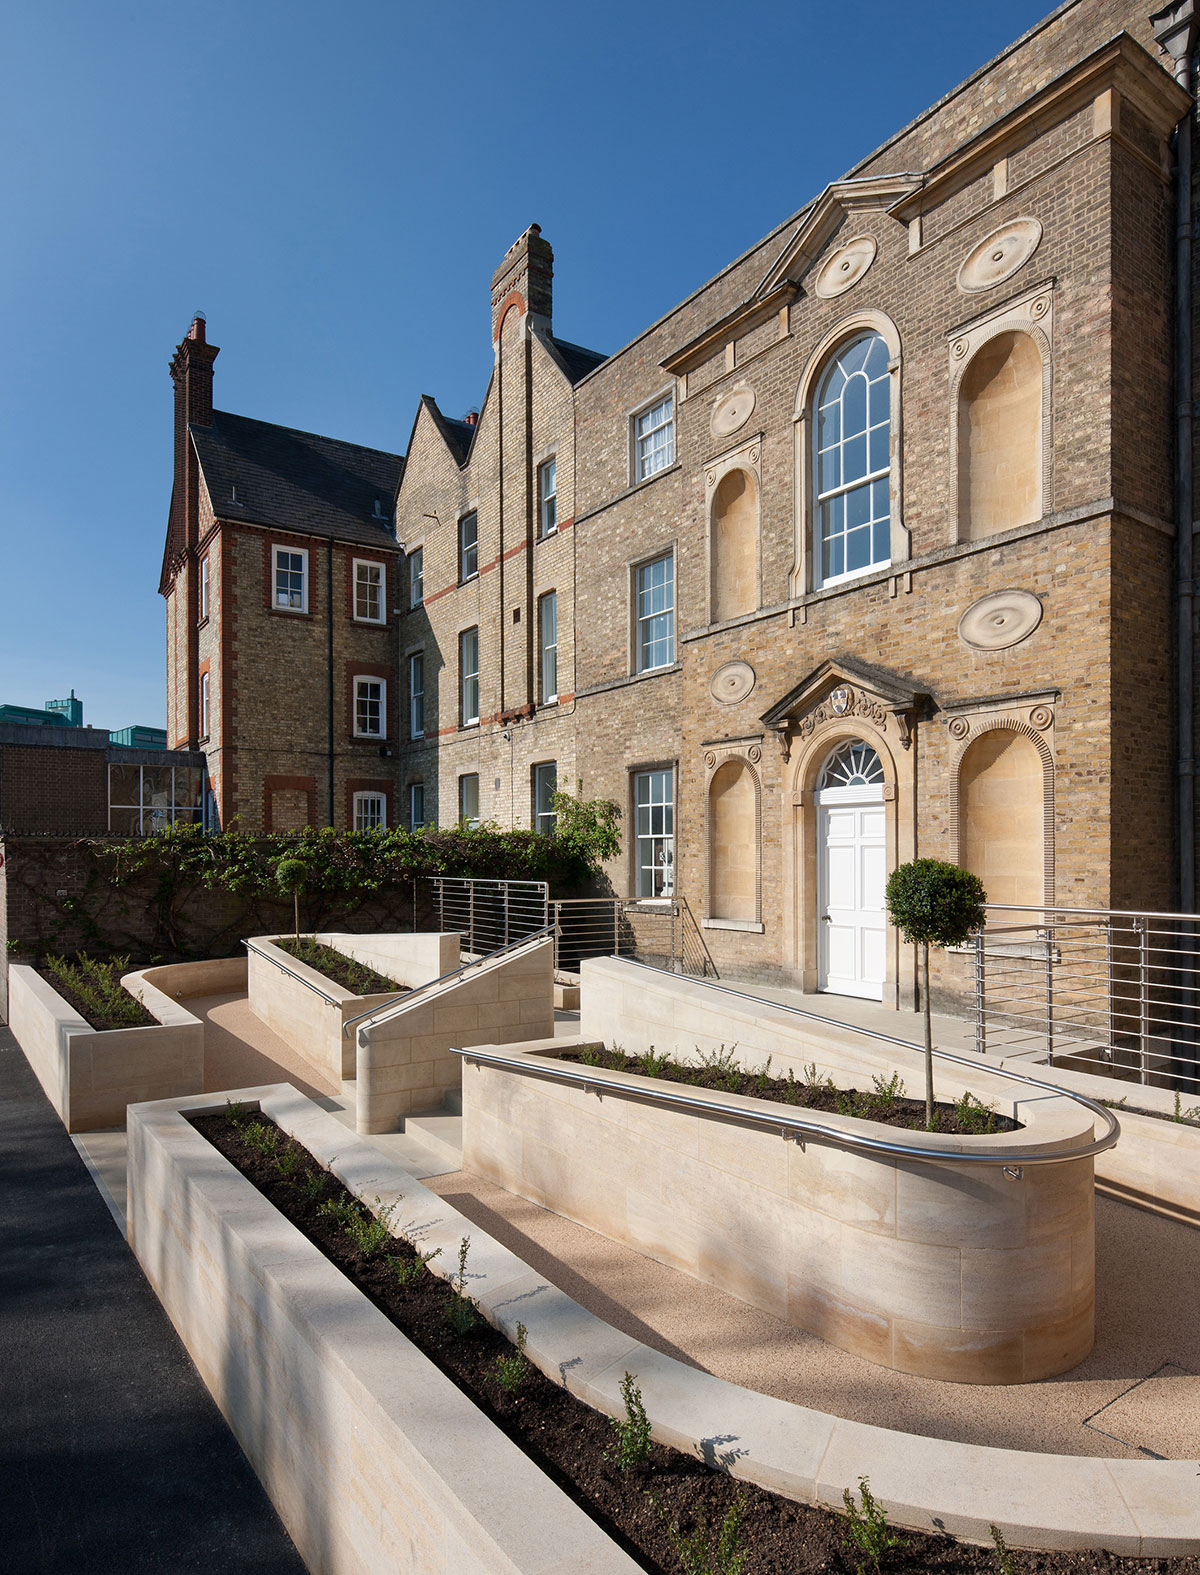 St Hilda's Entrance Project - Adrian James Architects, Oxford